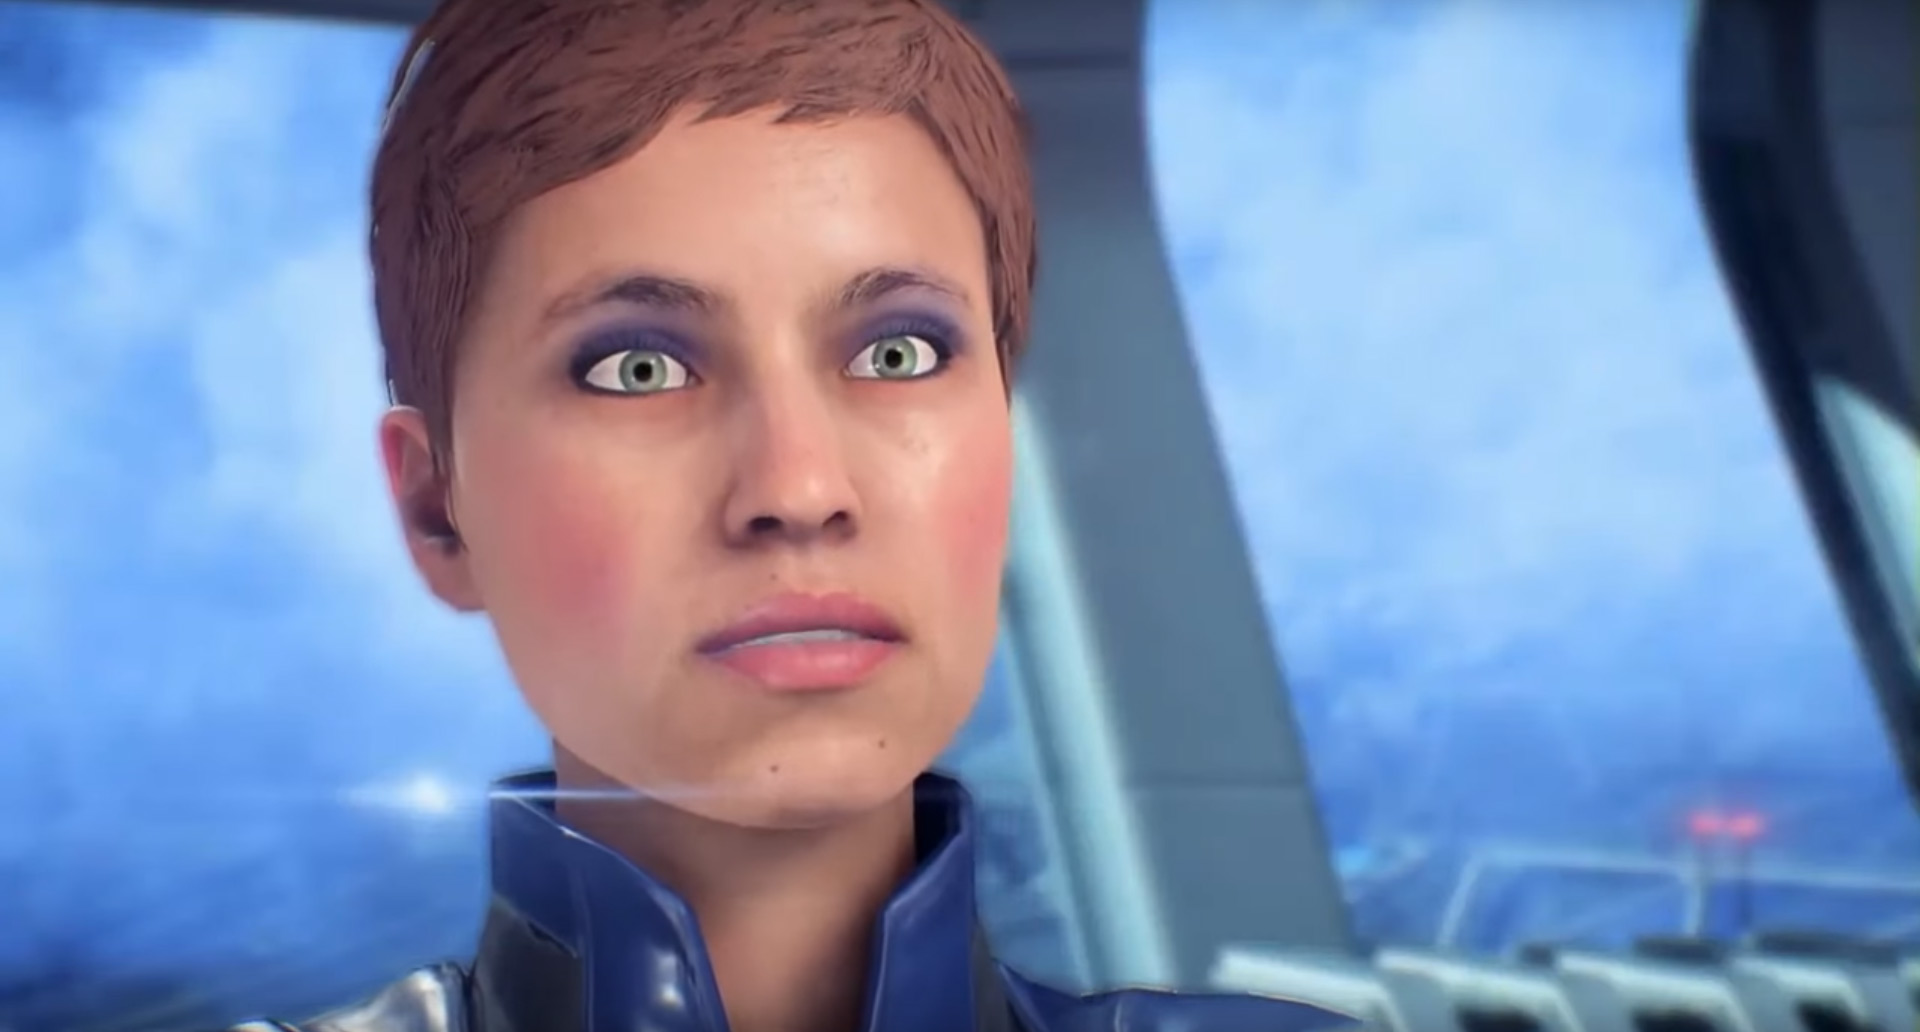 Mass Effect Andromeda DLC Cancellation Denied by Bioware